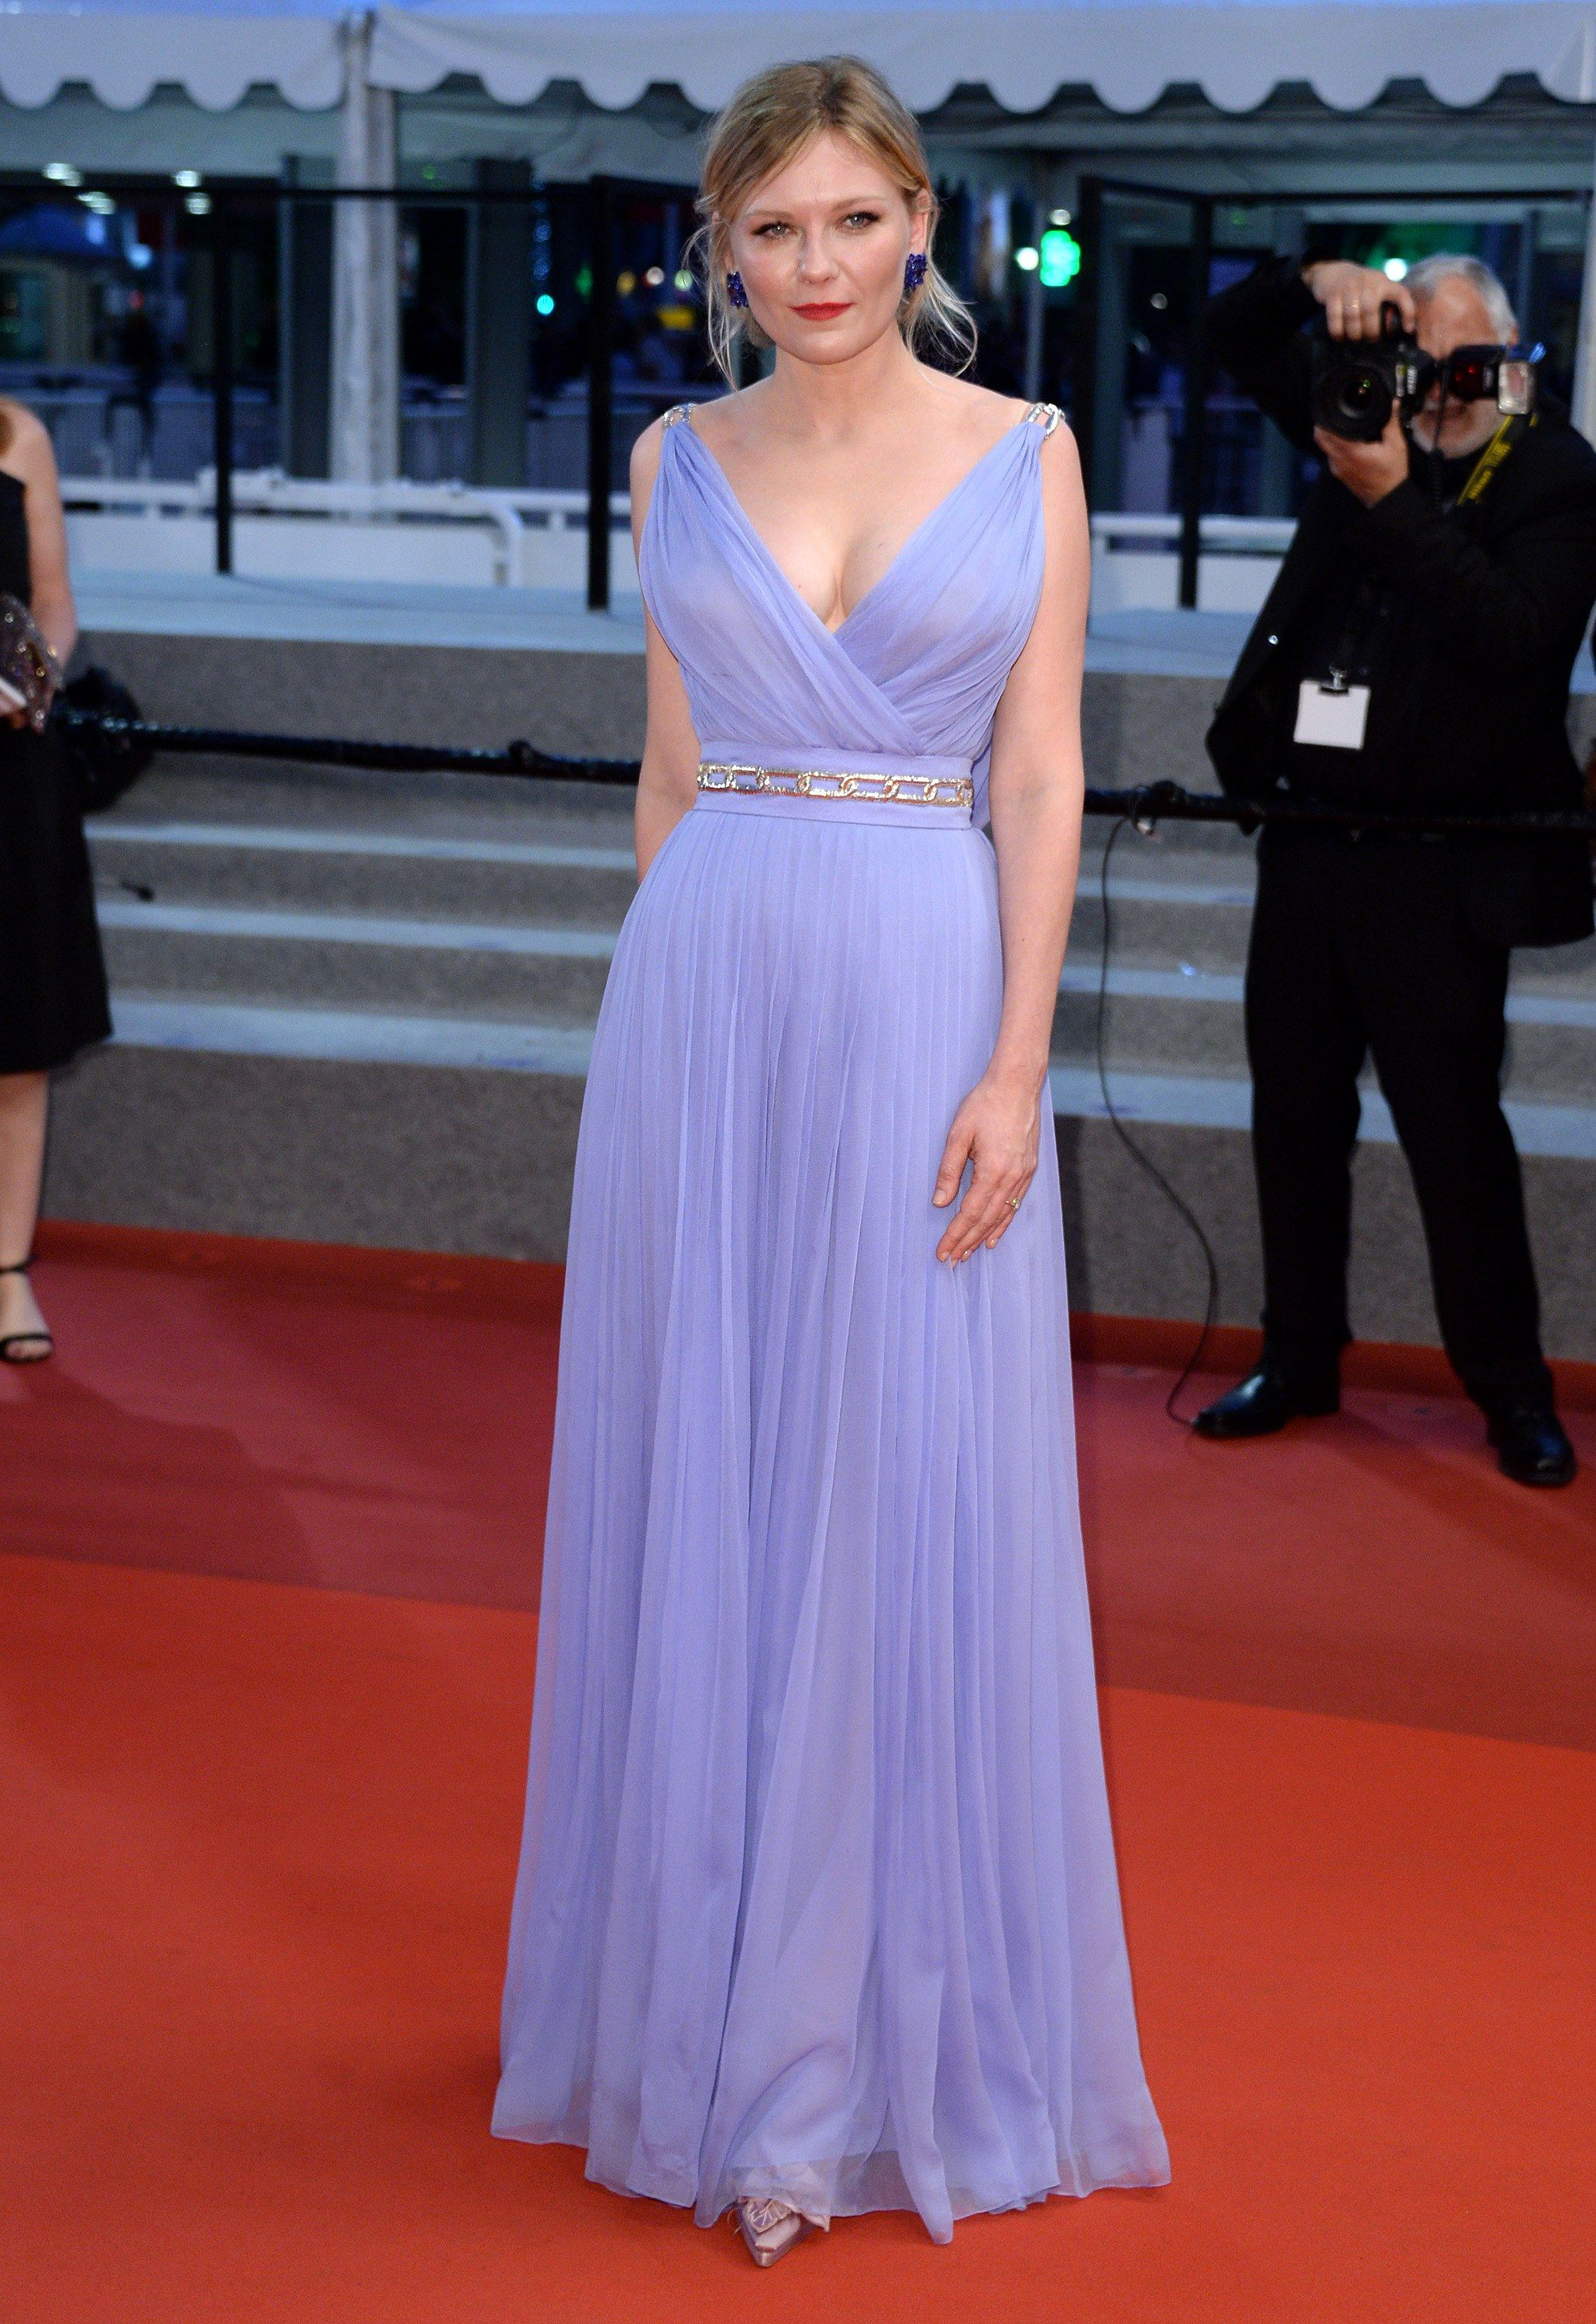 67360a455c Why Kirsten Dunst Is the Queen of the Cannes Film Festival Red ...